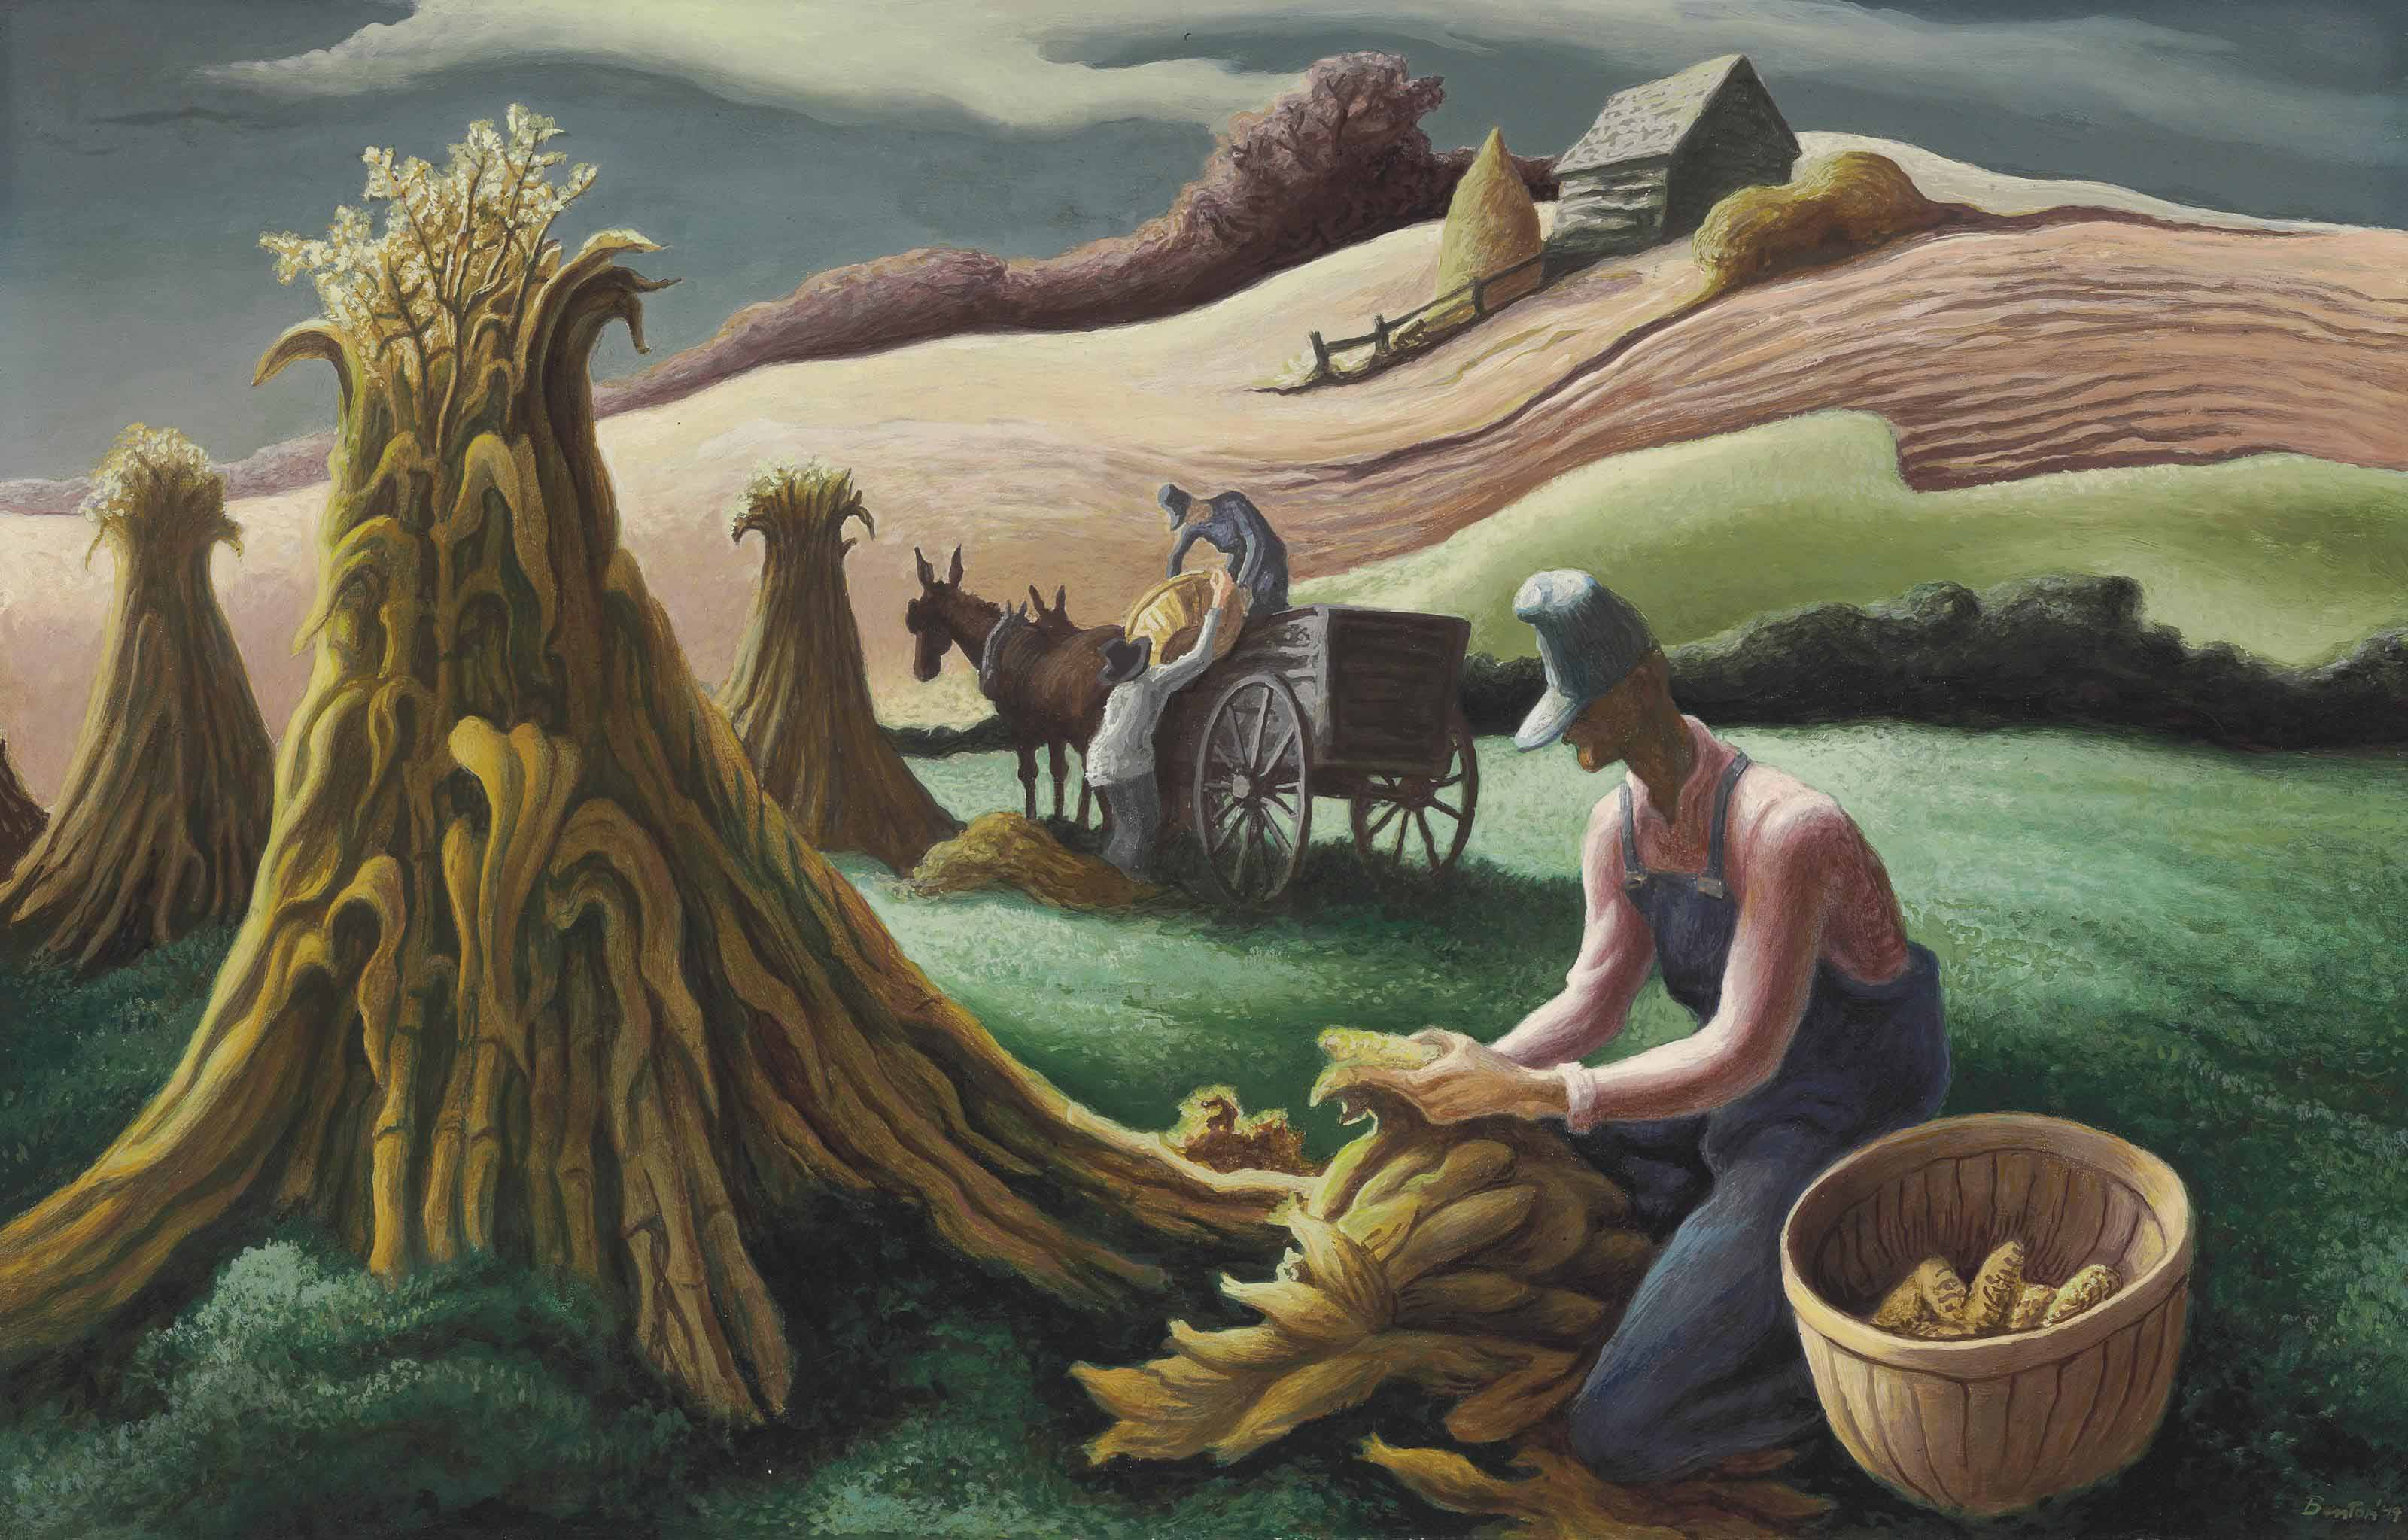 thomas hart benton essay Lot essay thomas hart benton was the son of a missouri politician who passed on his strong patriotic feeling toward his country evident in his paintings throughout.